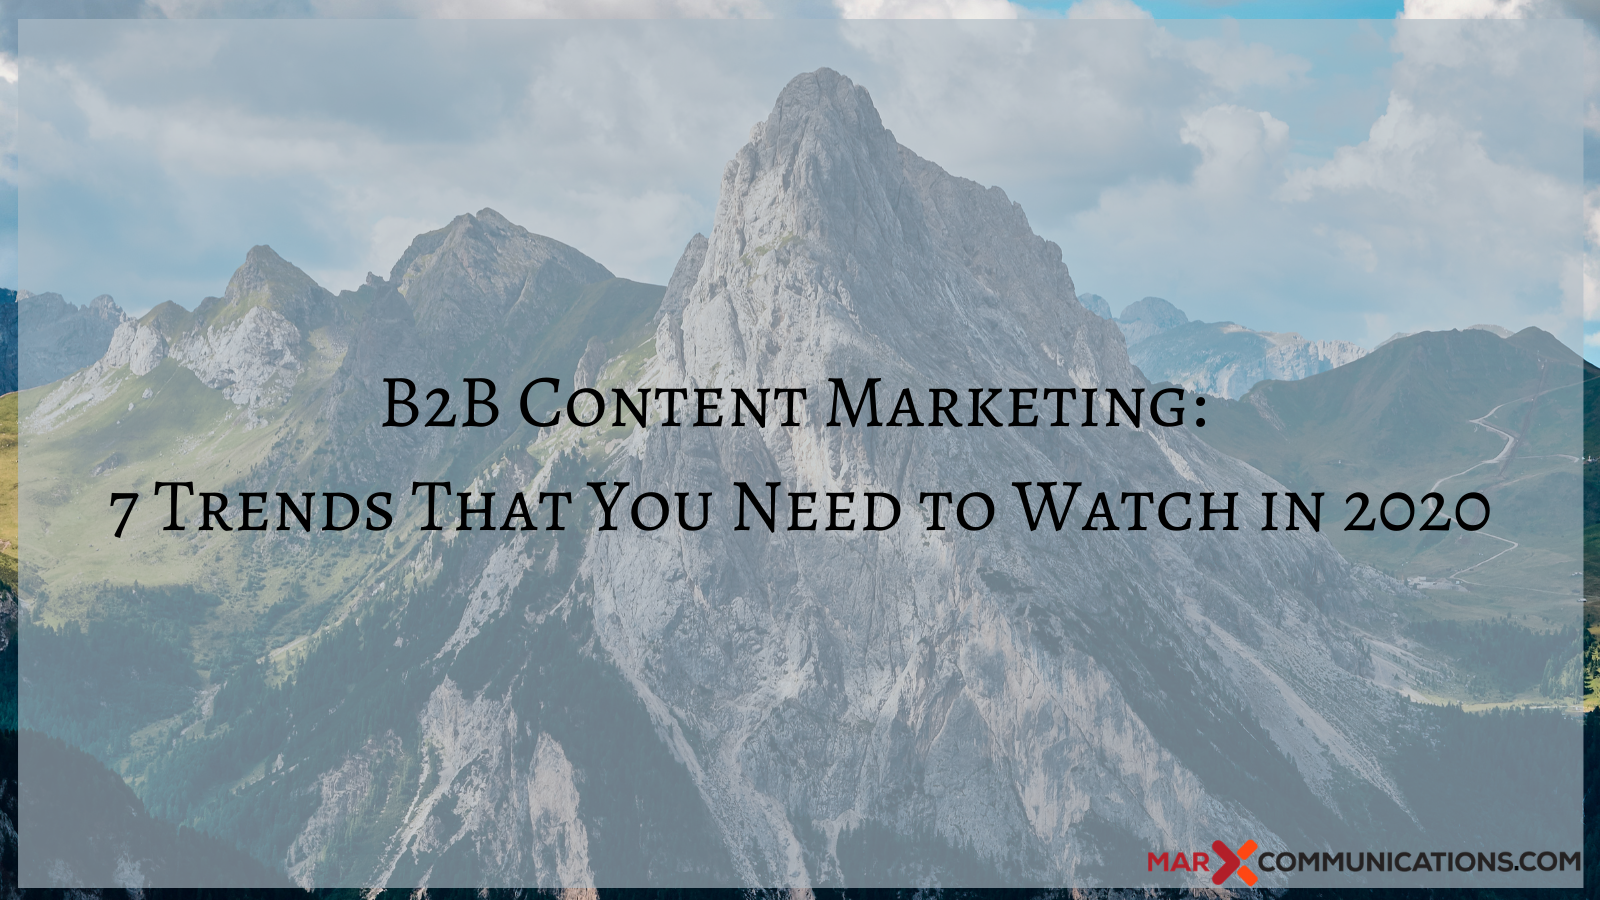 B2B Content Marketing: 5 Trends That You Need to Watch in 2020